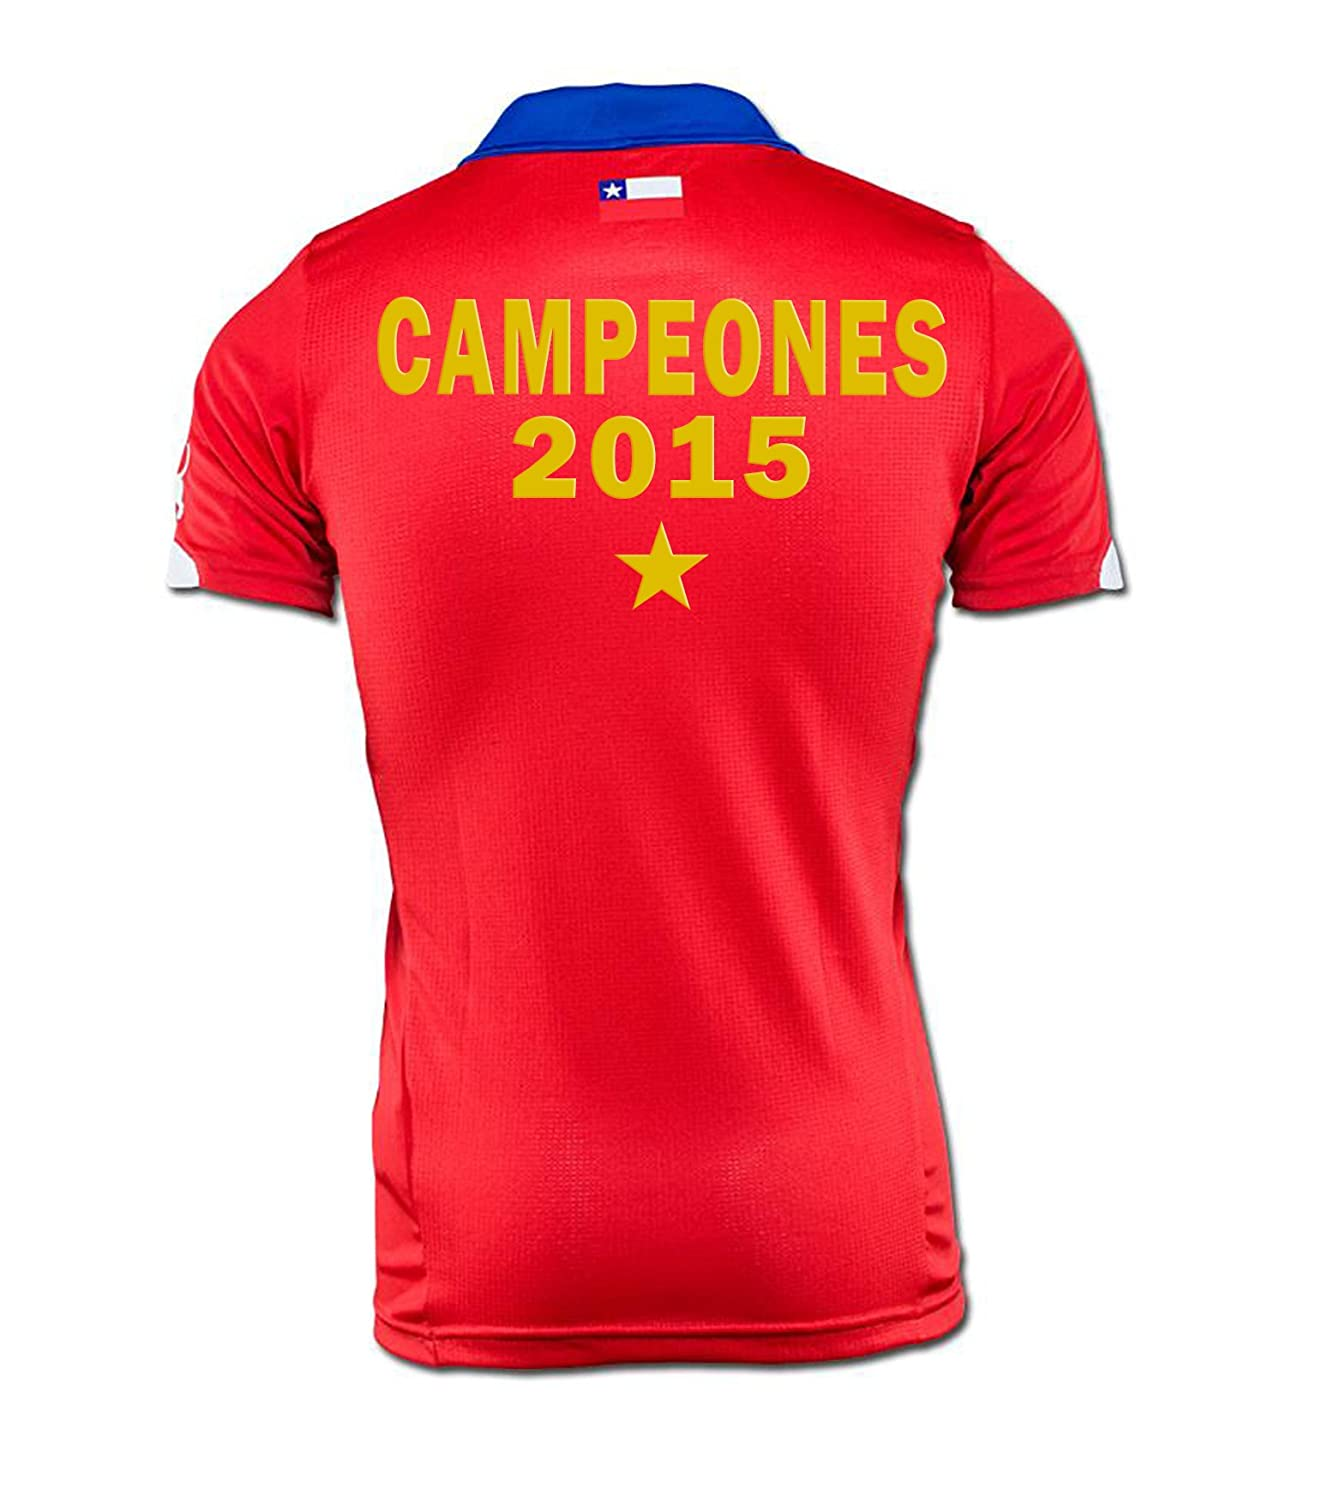 Campeones 2015チリホームジャージーSpecial Edition B0113A9NYYXL